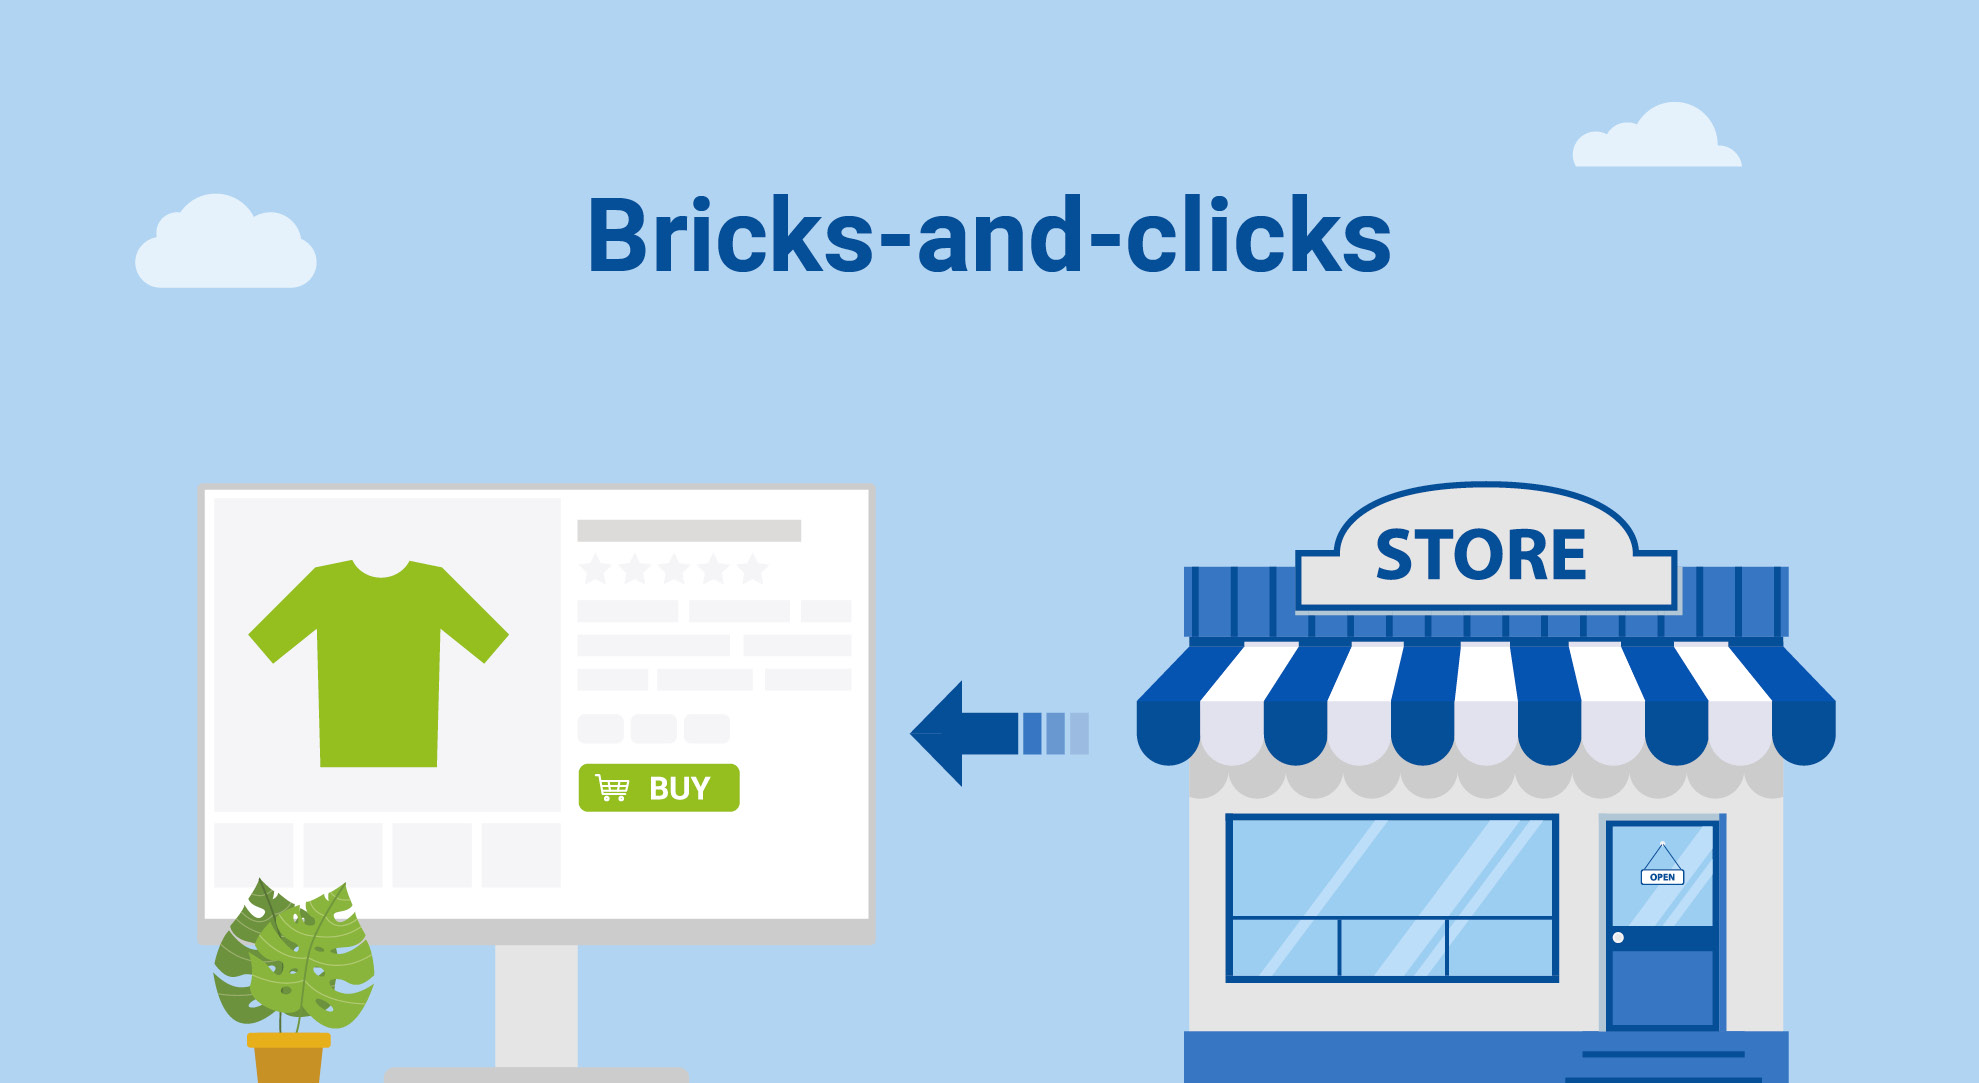 A Bricks-and-Clicks model